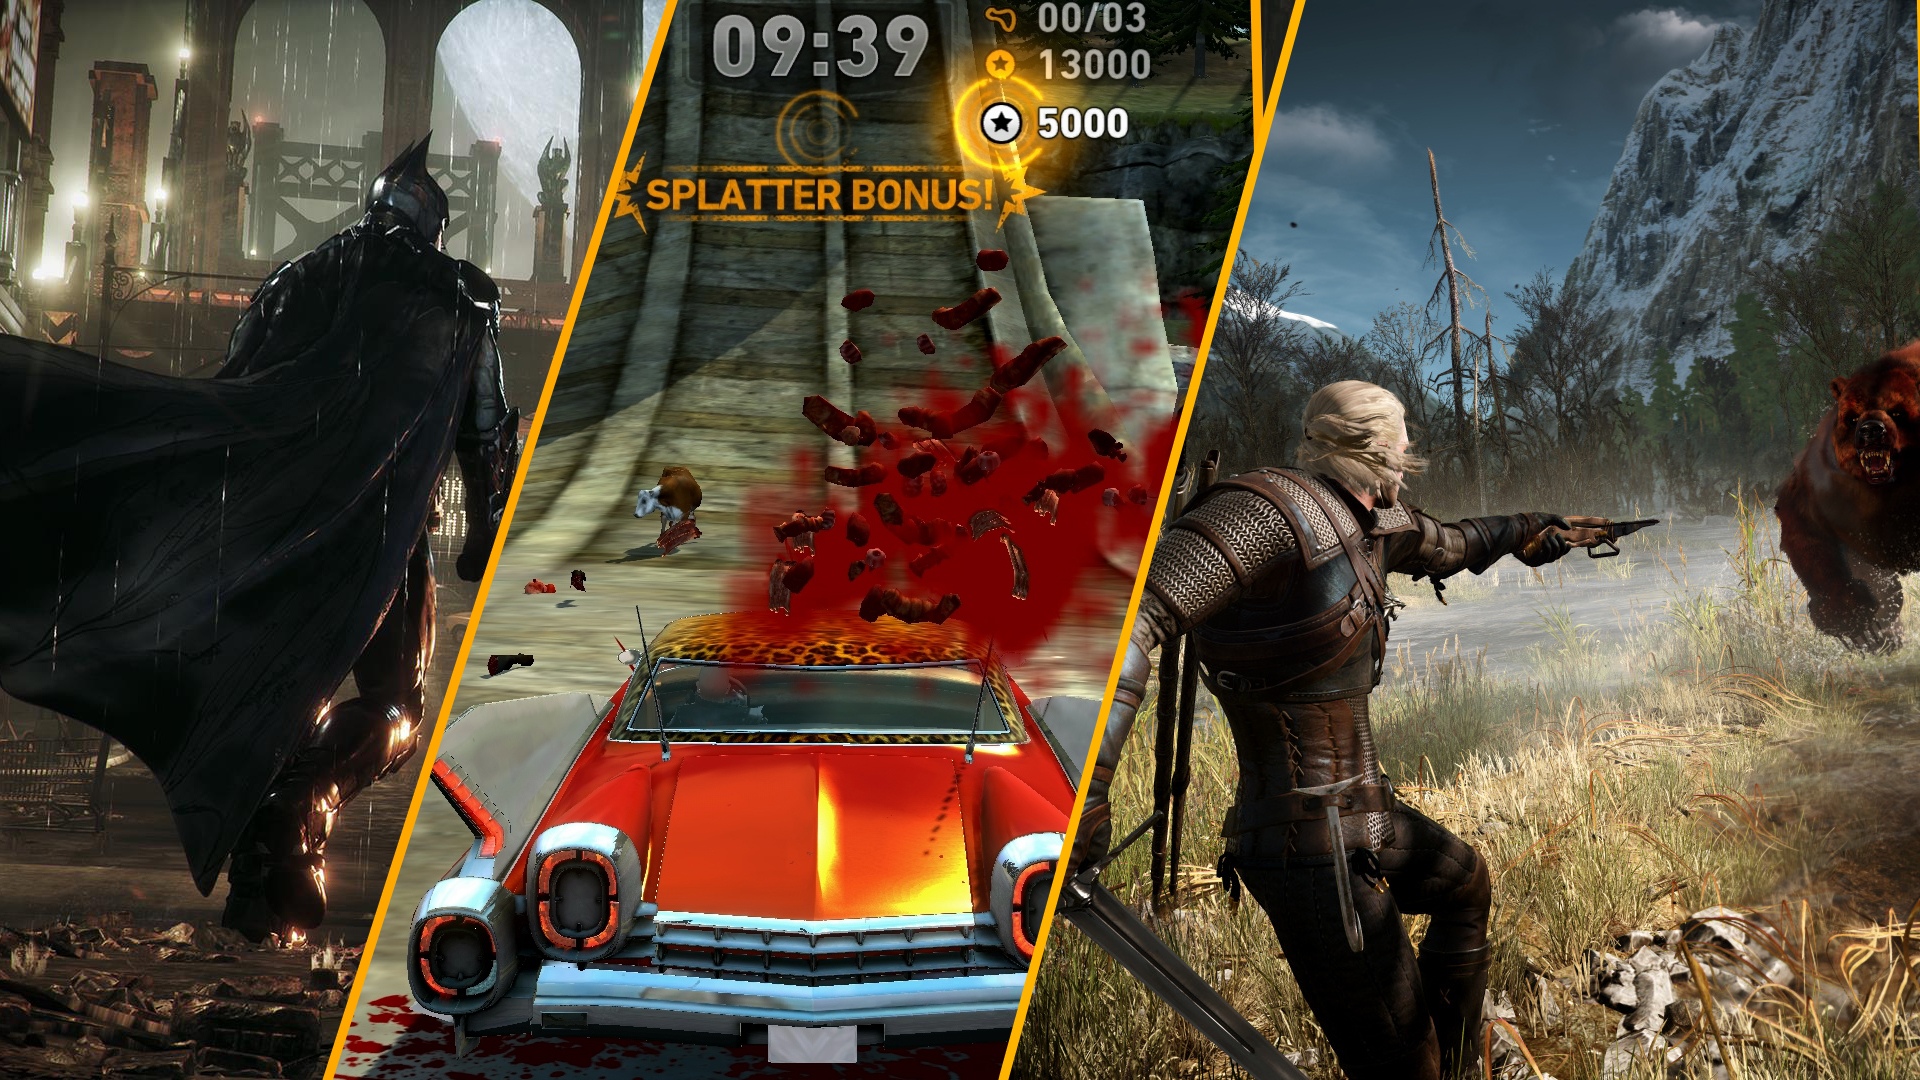 Photo of The Witcher 3 מזדהב, Carmageddon נדחה ו-Arkham Knight בדרך